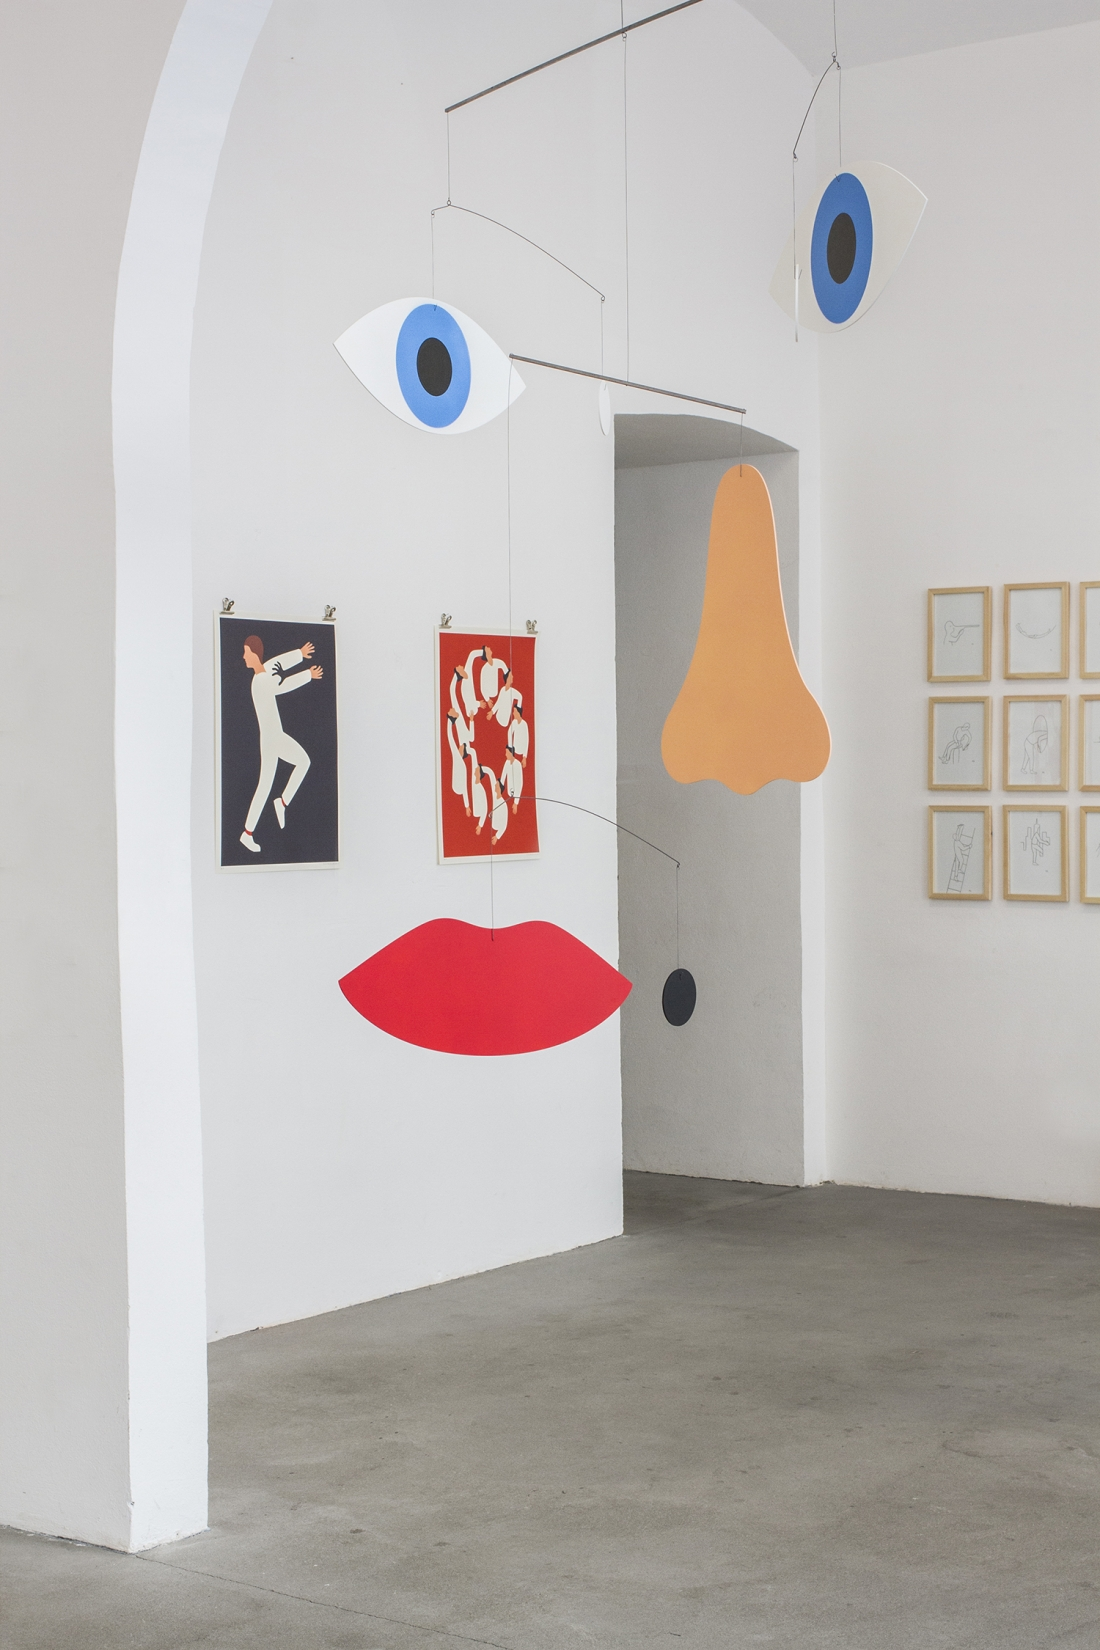 Portraits, Process and Installation Views of 'Alternate Realities' at T/abor Gallery in Vienna